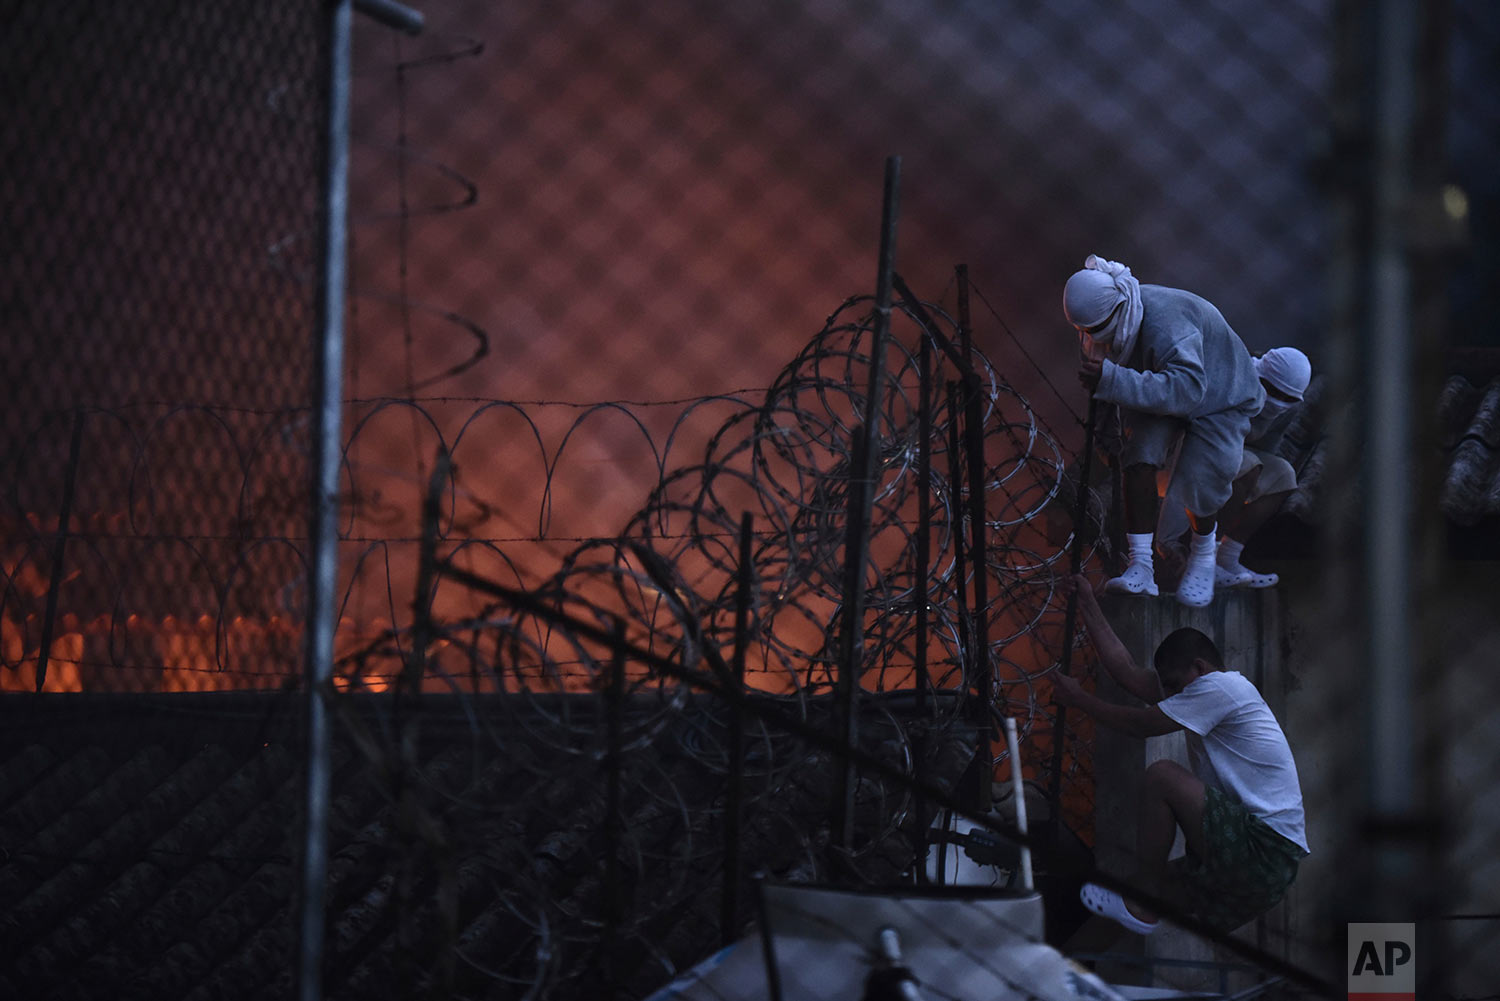 Inmates climb to the roof as a fire breaks out during a riot at the youth and men's reformatory Centro Correccional Etapa II in San Jose Pinula, Guatemala, Sunday, March 19, 2017. At least one man died, a jail monitor, during the riot, according the police spokesman Pablo Castillo. (AP Photo/Oliver de Ros)